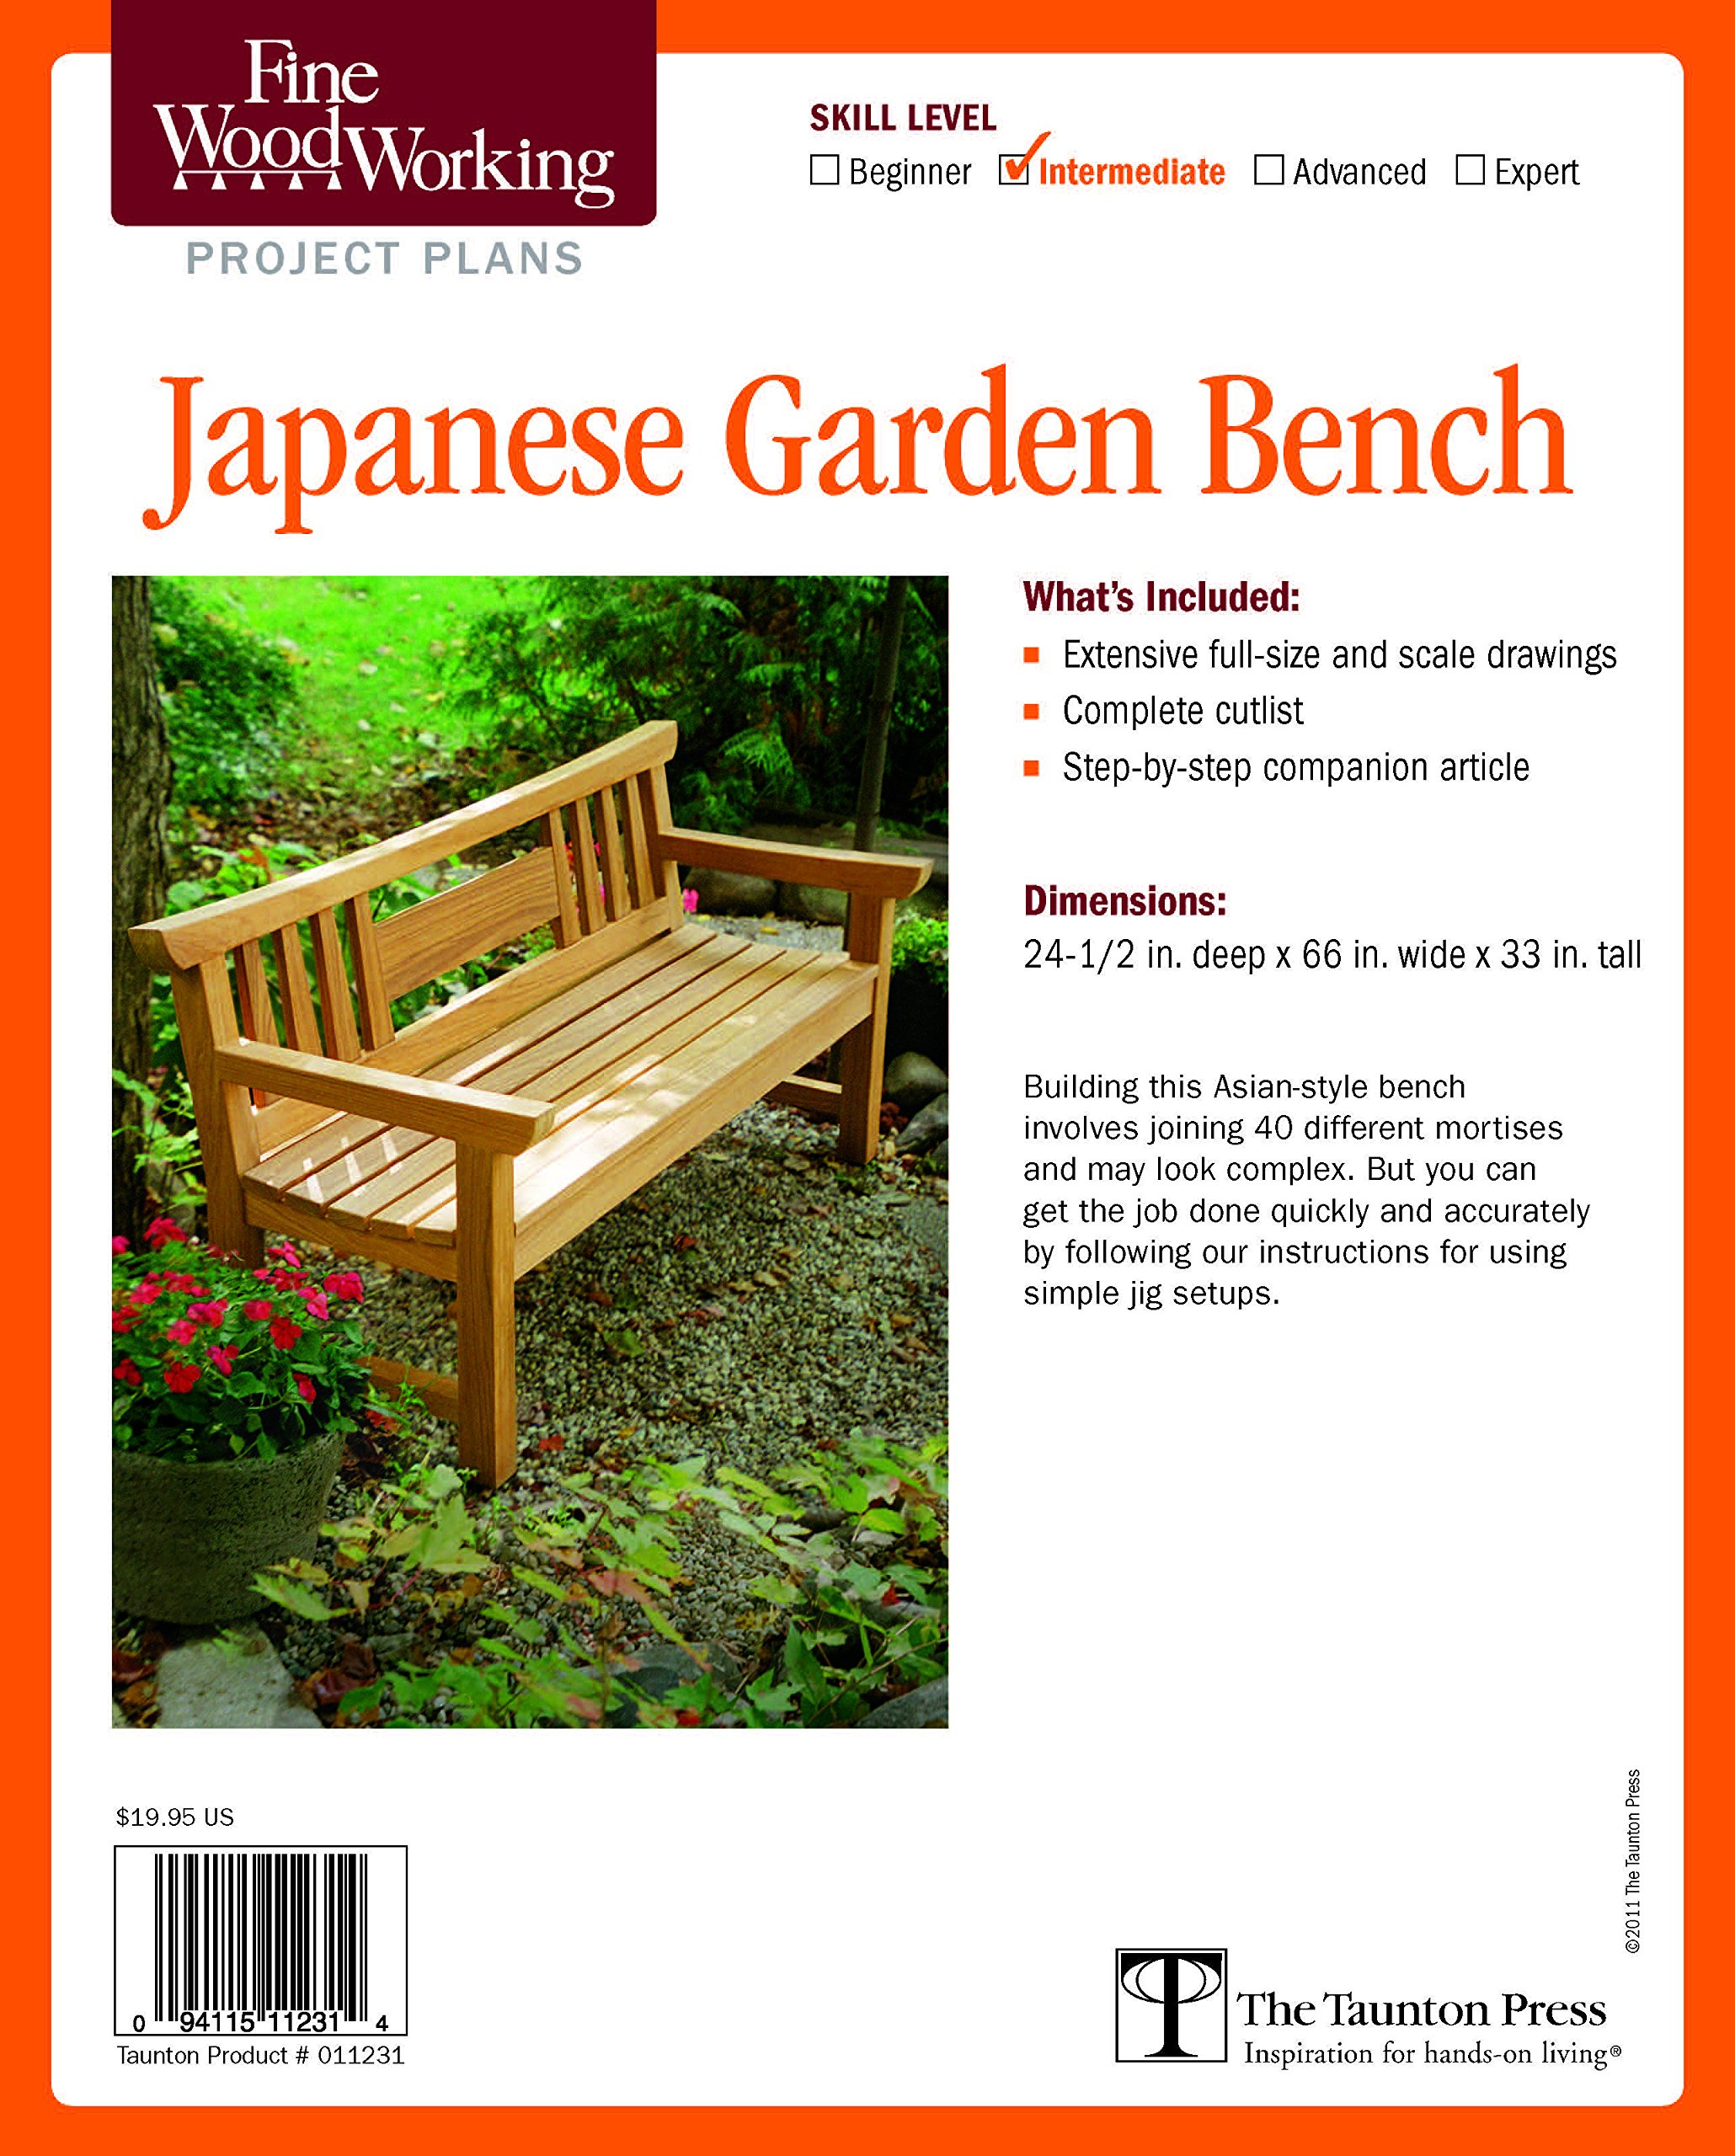 Fine Woodworking's Japanese Garden Bench Plan (Fine Woodworking Project Plans) by Taunton Press